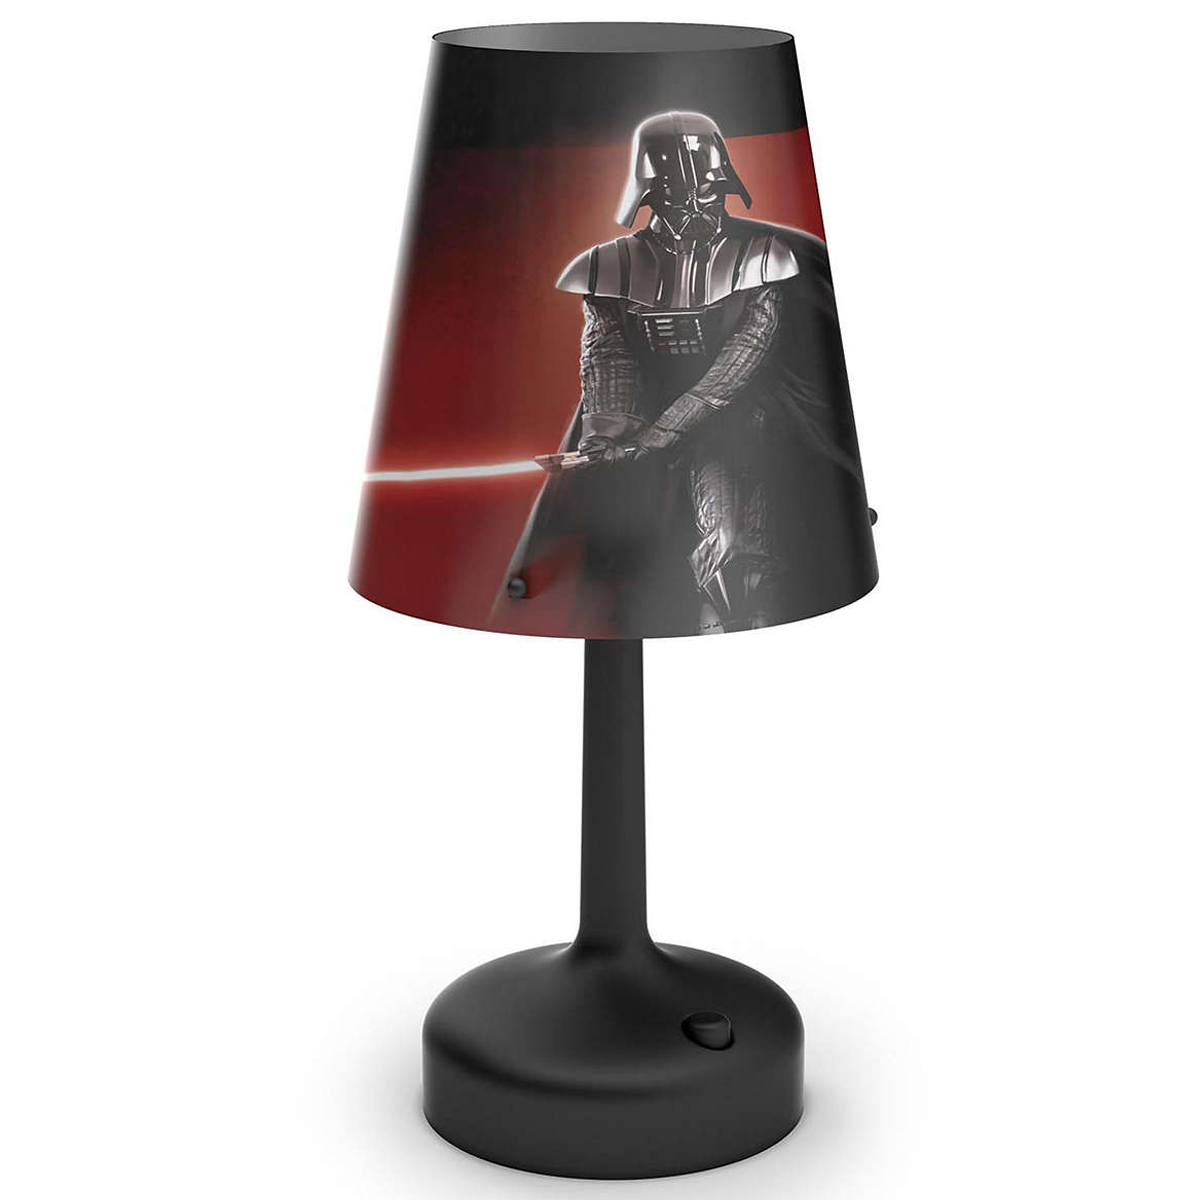 neuf lampe de chevet dark vador star wars disney philips ebay. Black Bedroom Furniture Sets. Home Design Ideas